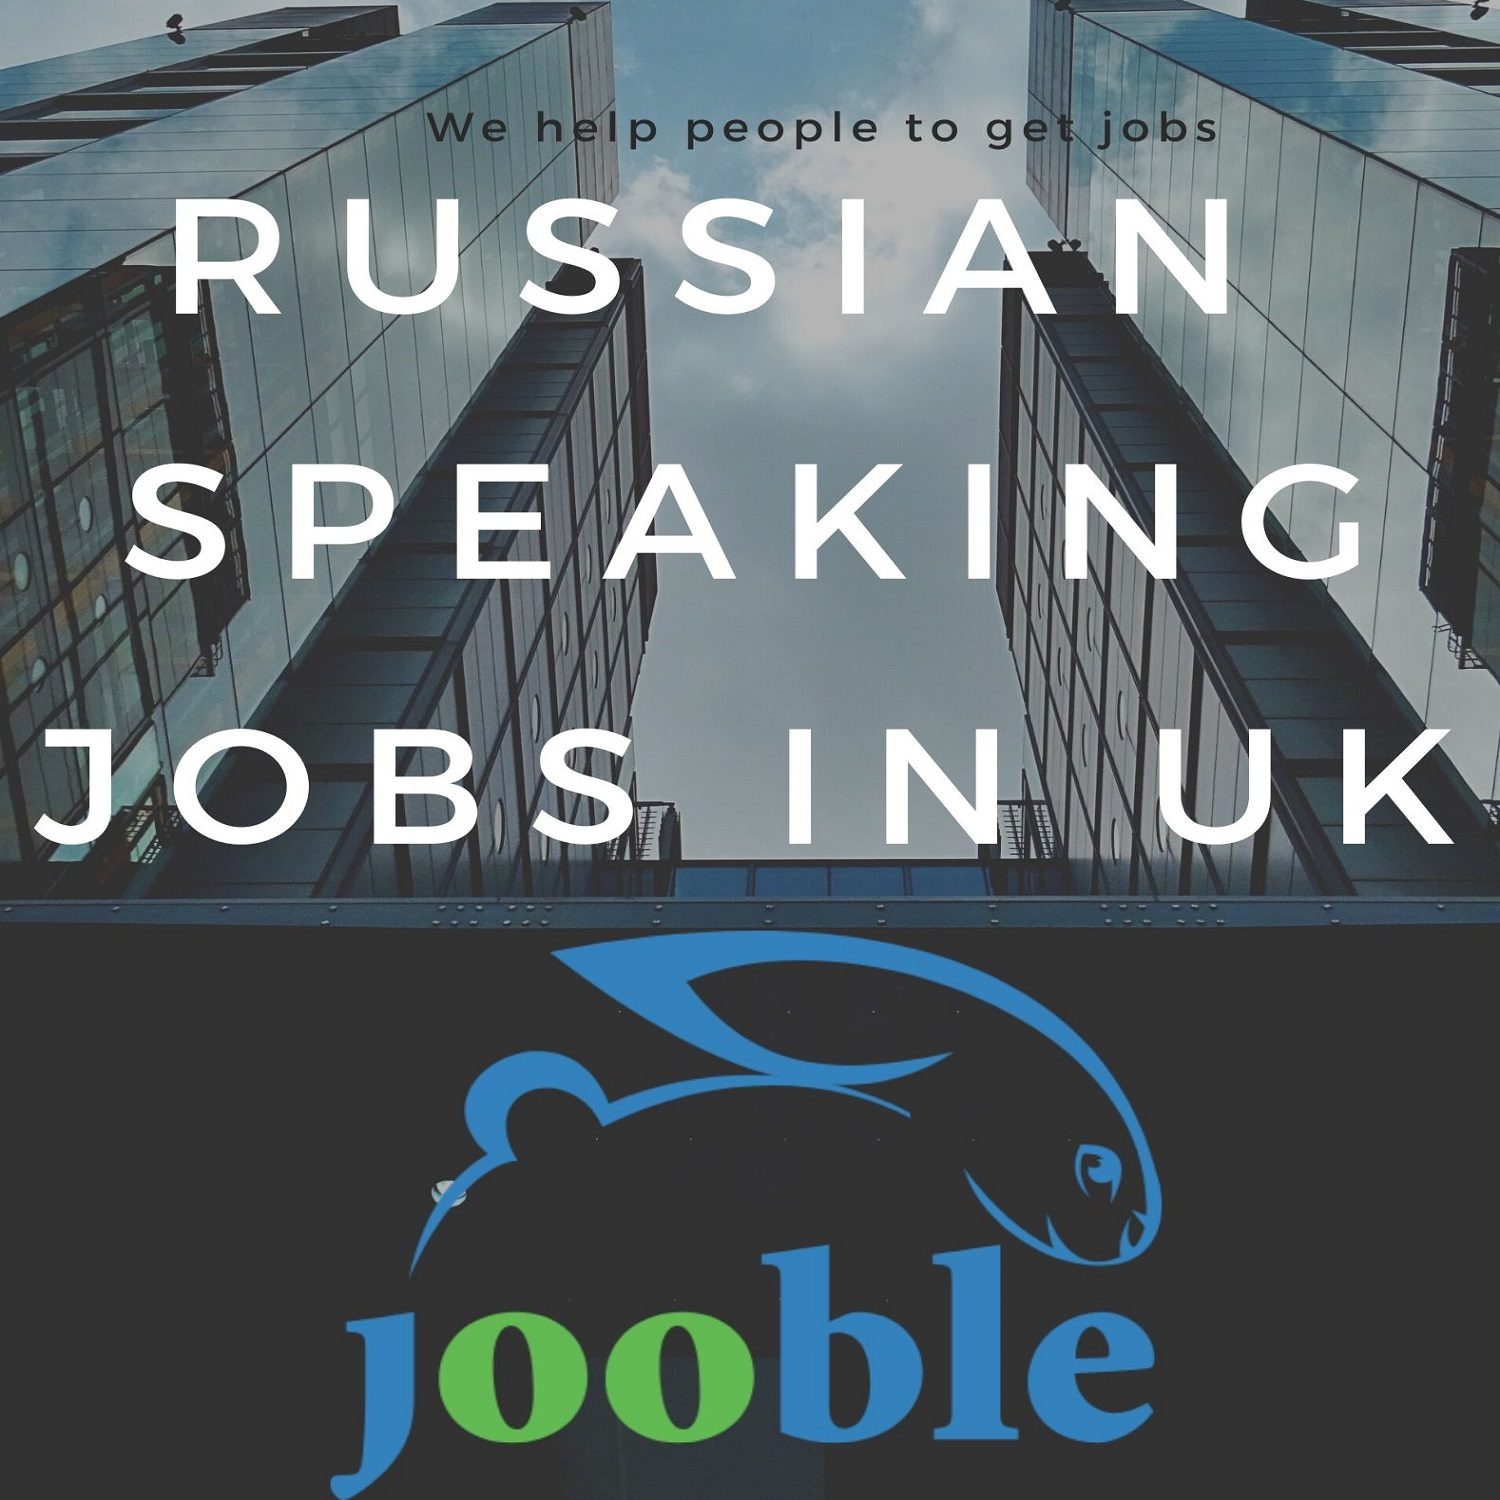 Jooble, an international job search engine